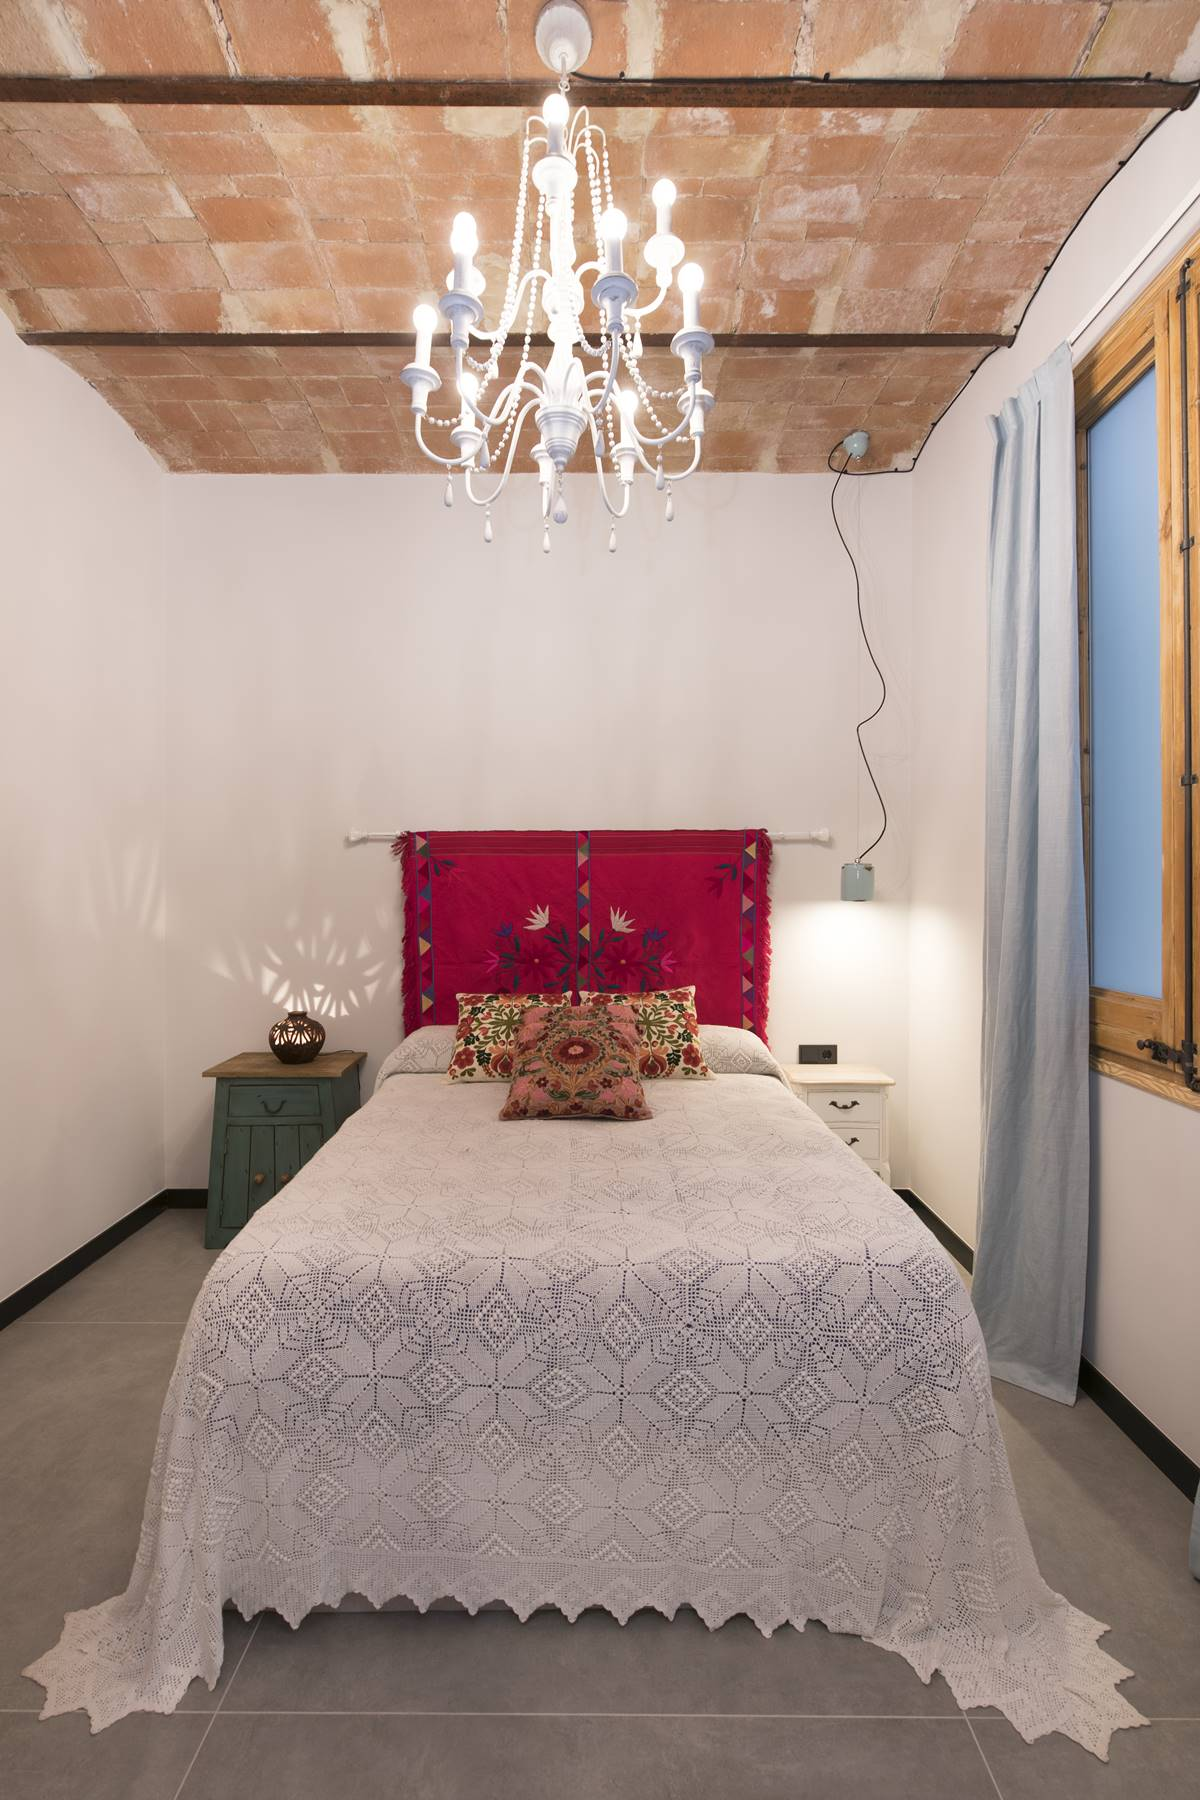 Guest bedroom with a brick ceiling